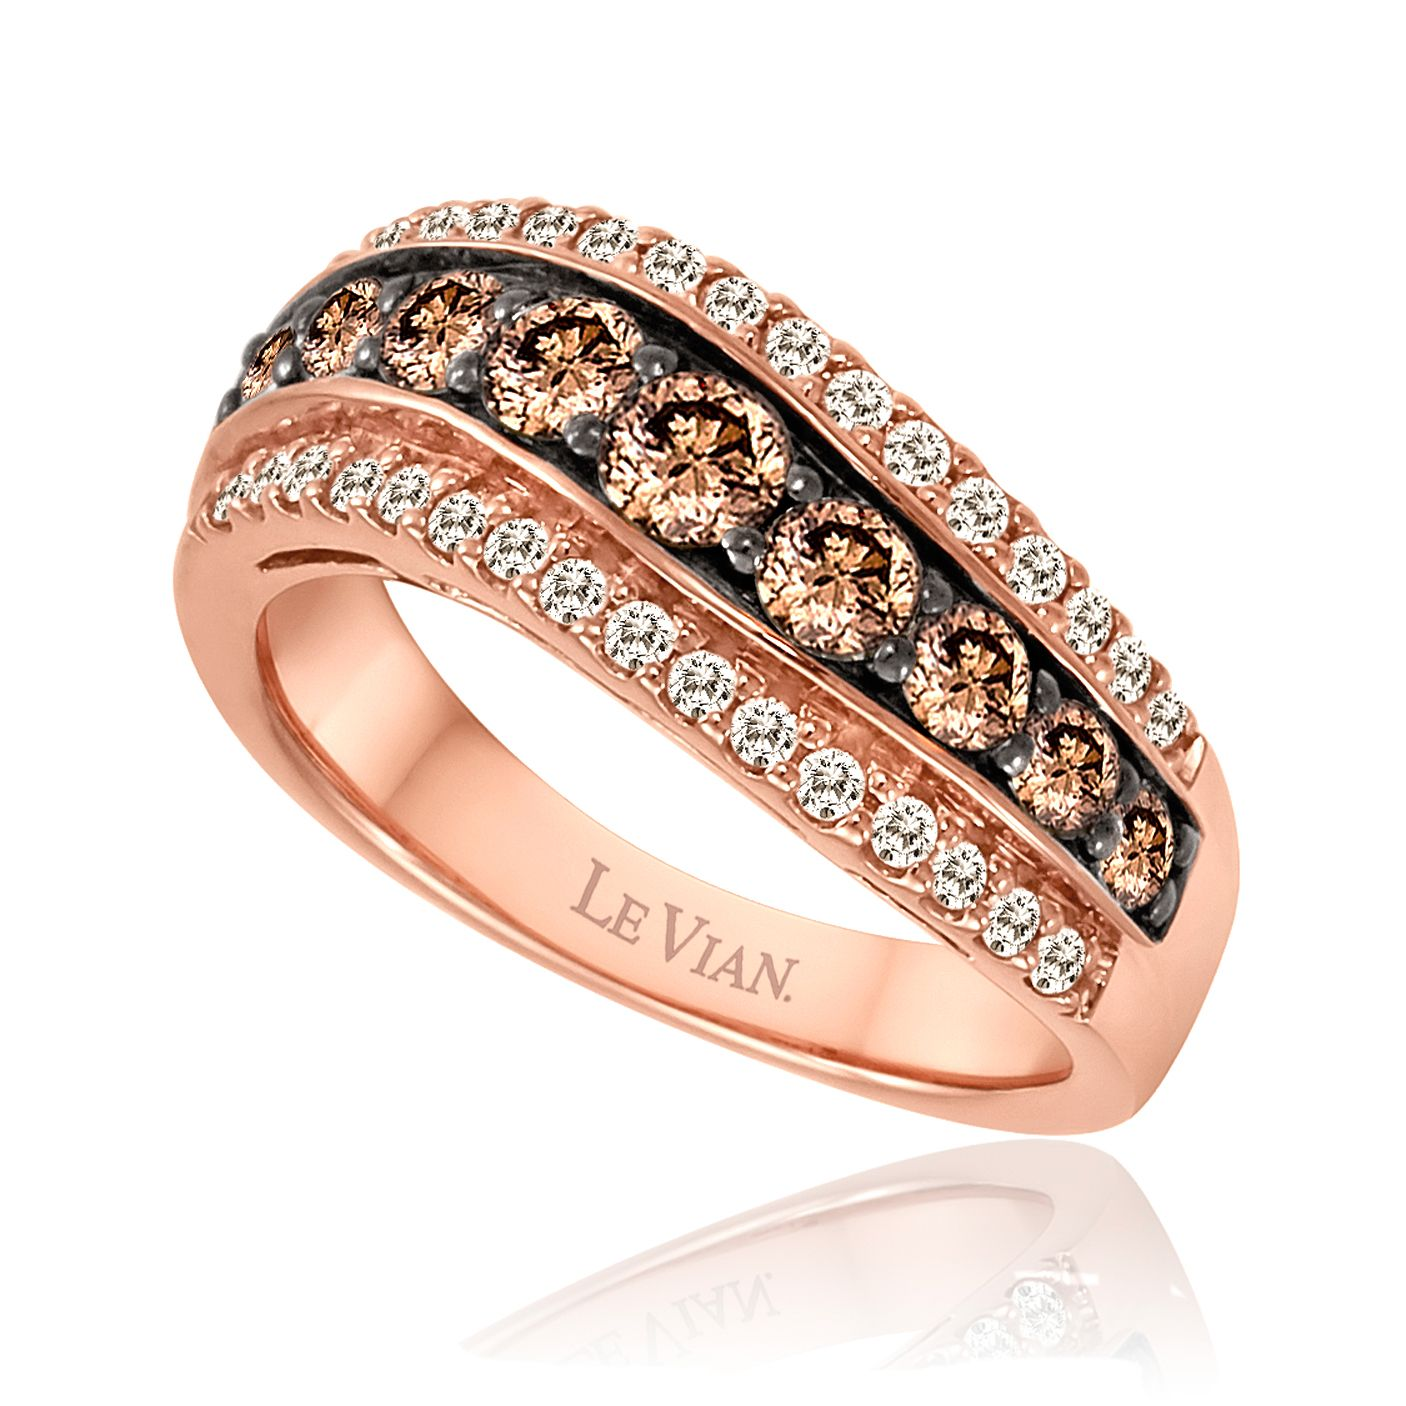 I saw this ring on a TV commercial for Jared jewelry and loved it so